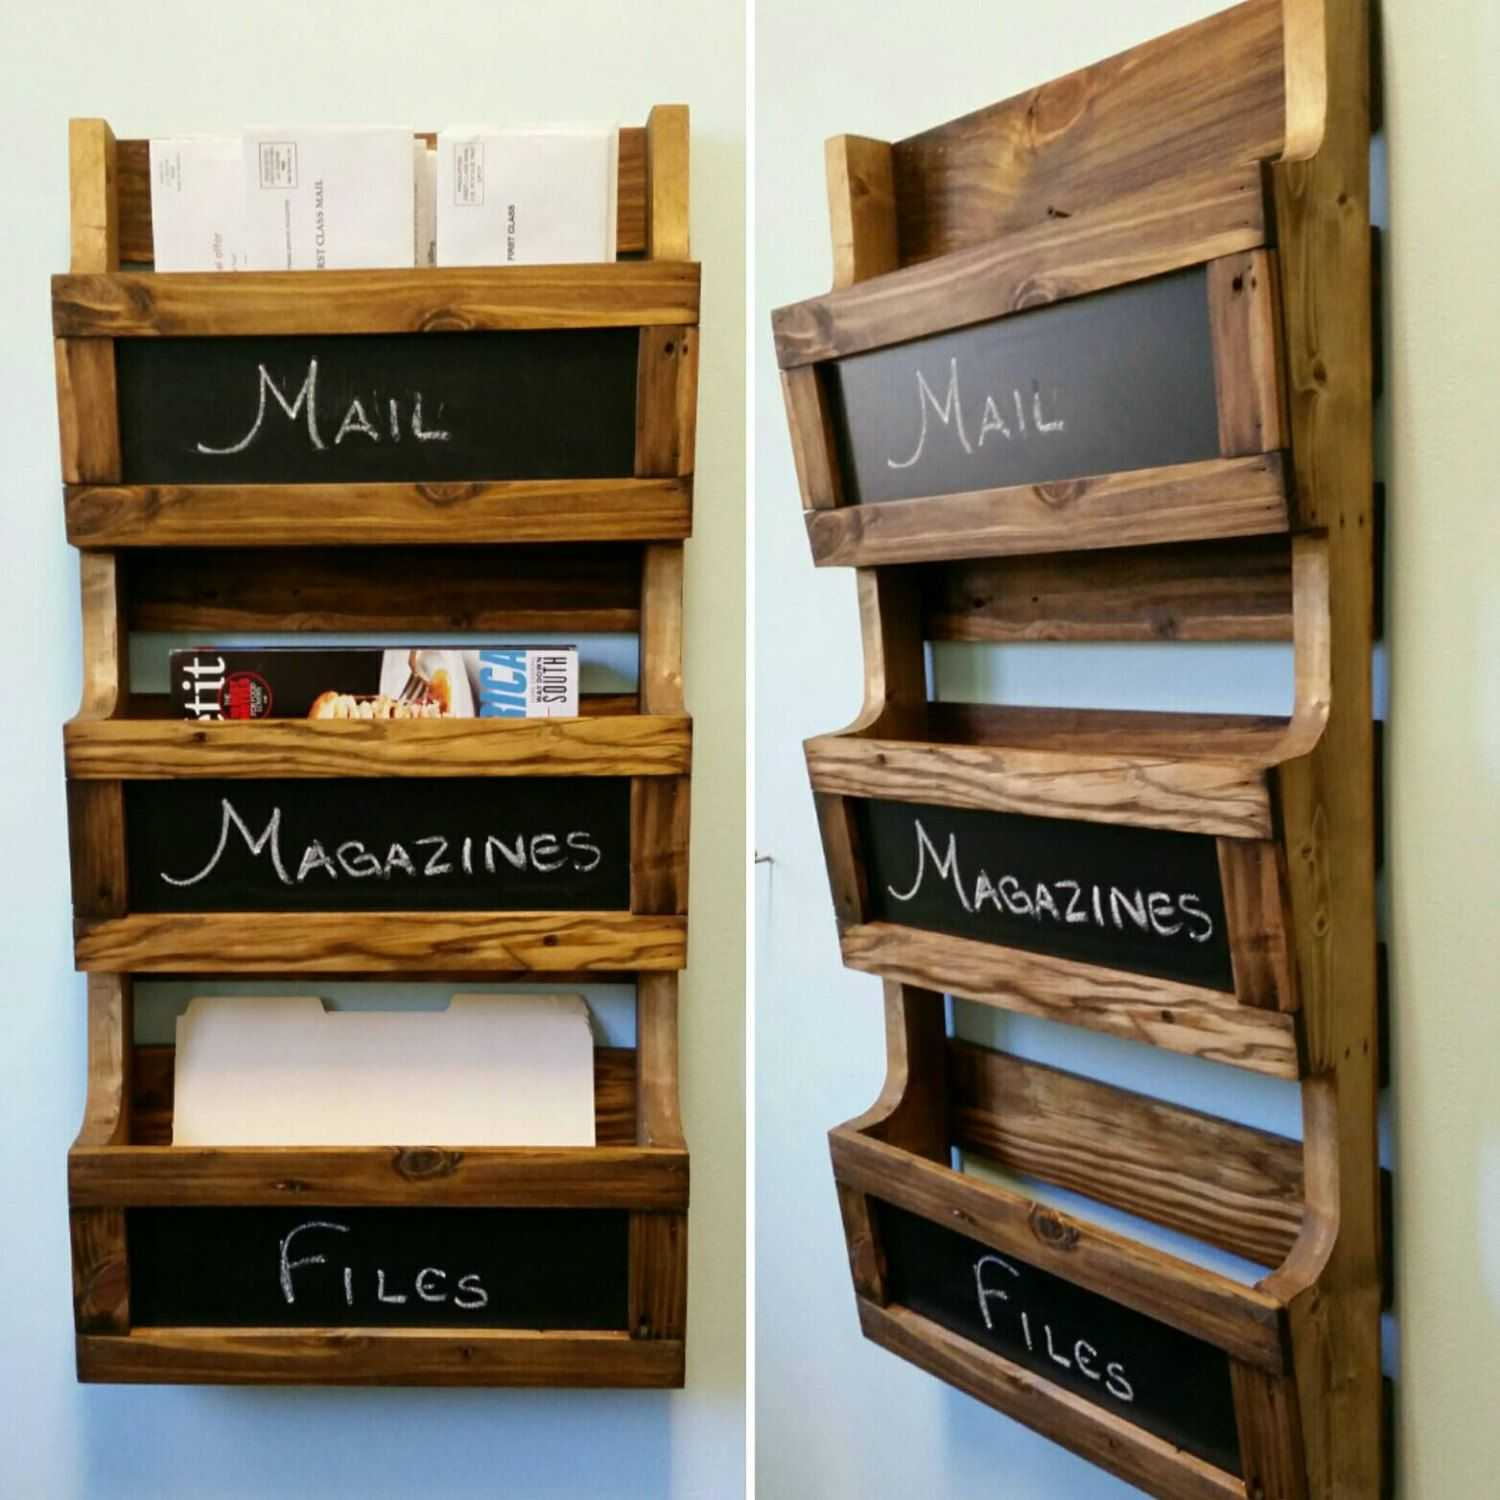 Got too many desk organization ideas to fit on your workspace? Check out these wall file organizers for some extra room!